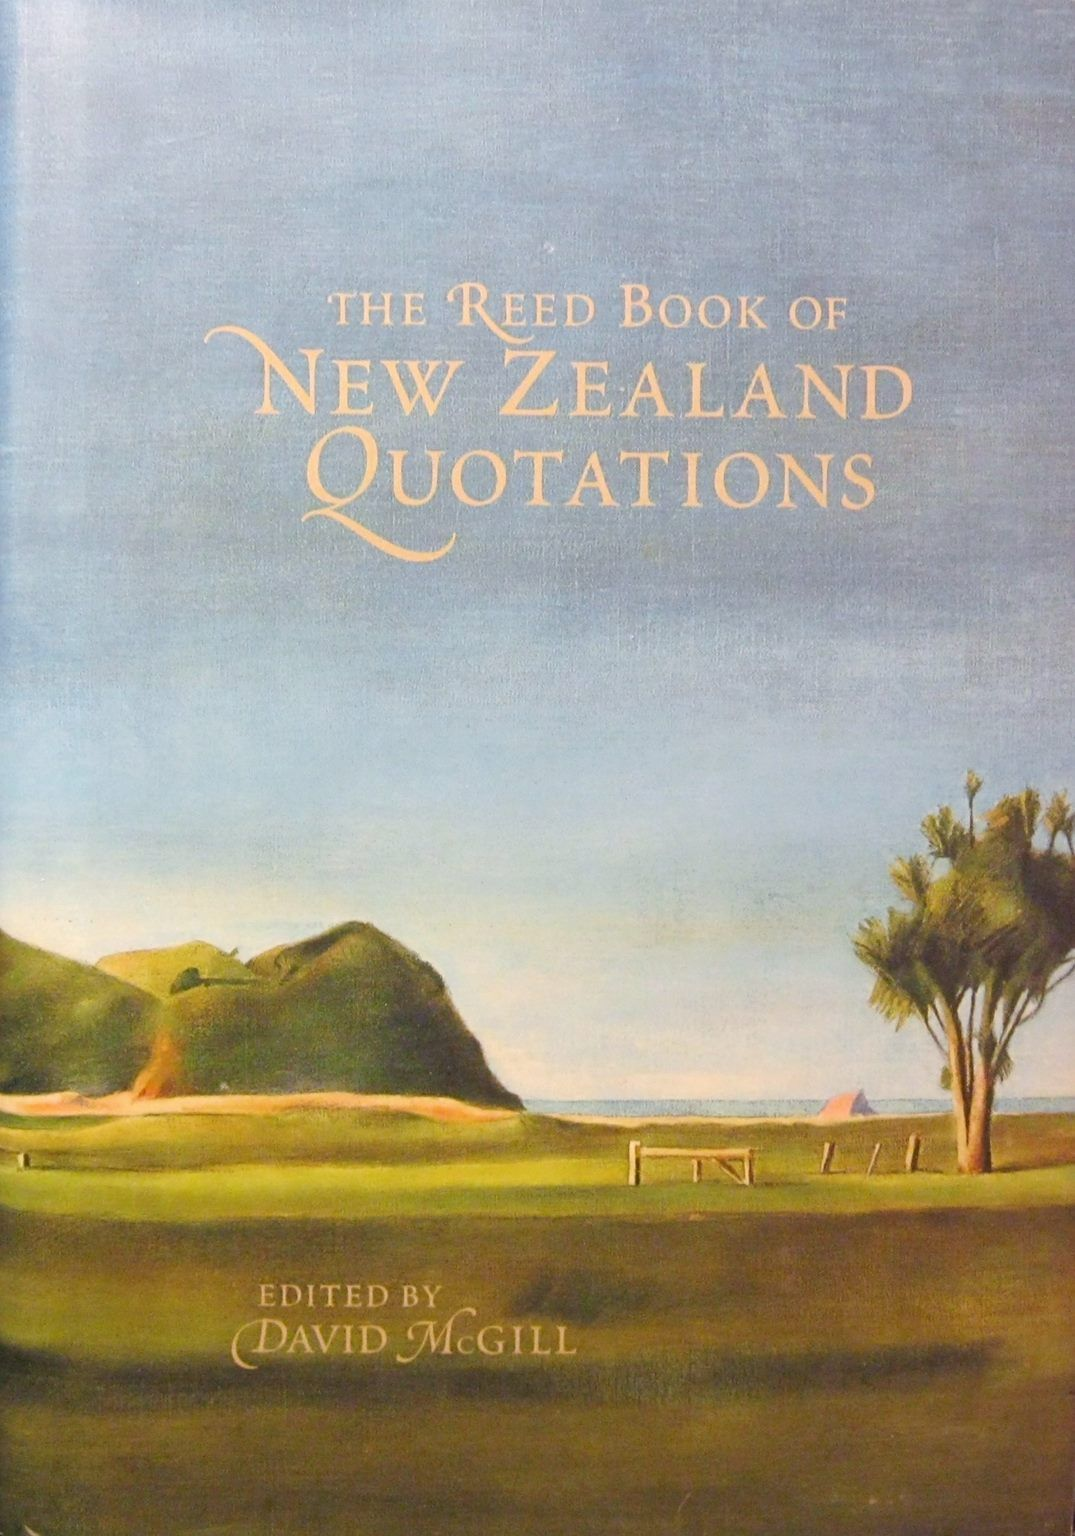 THE REED BOOK OF NEW ZEALAND QUOTATIONS